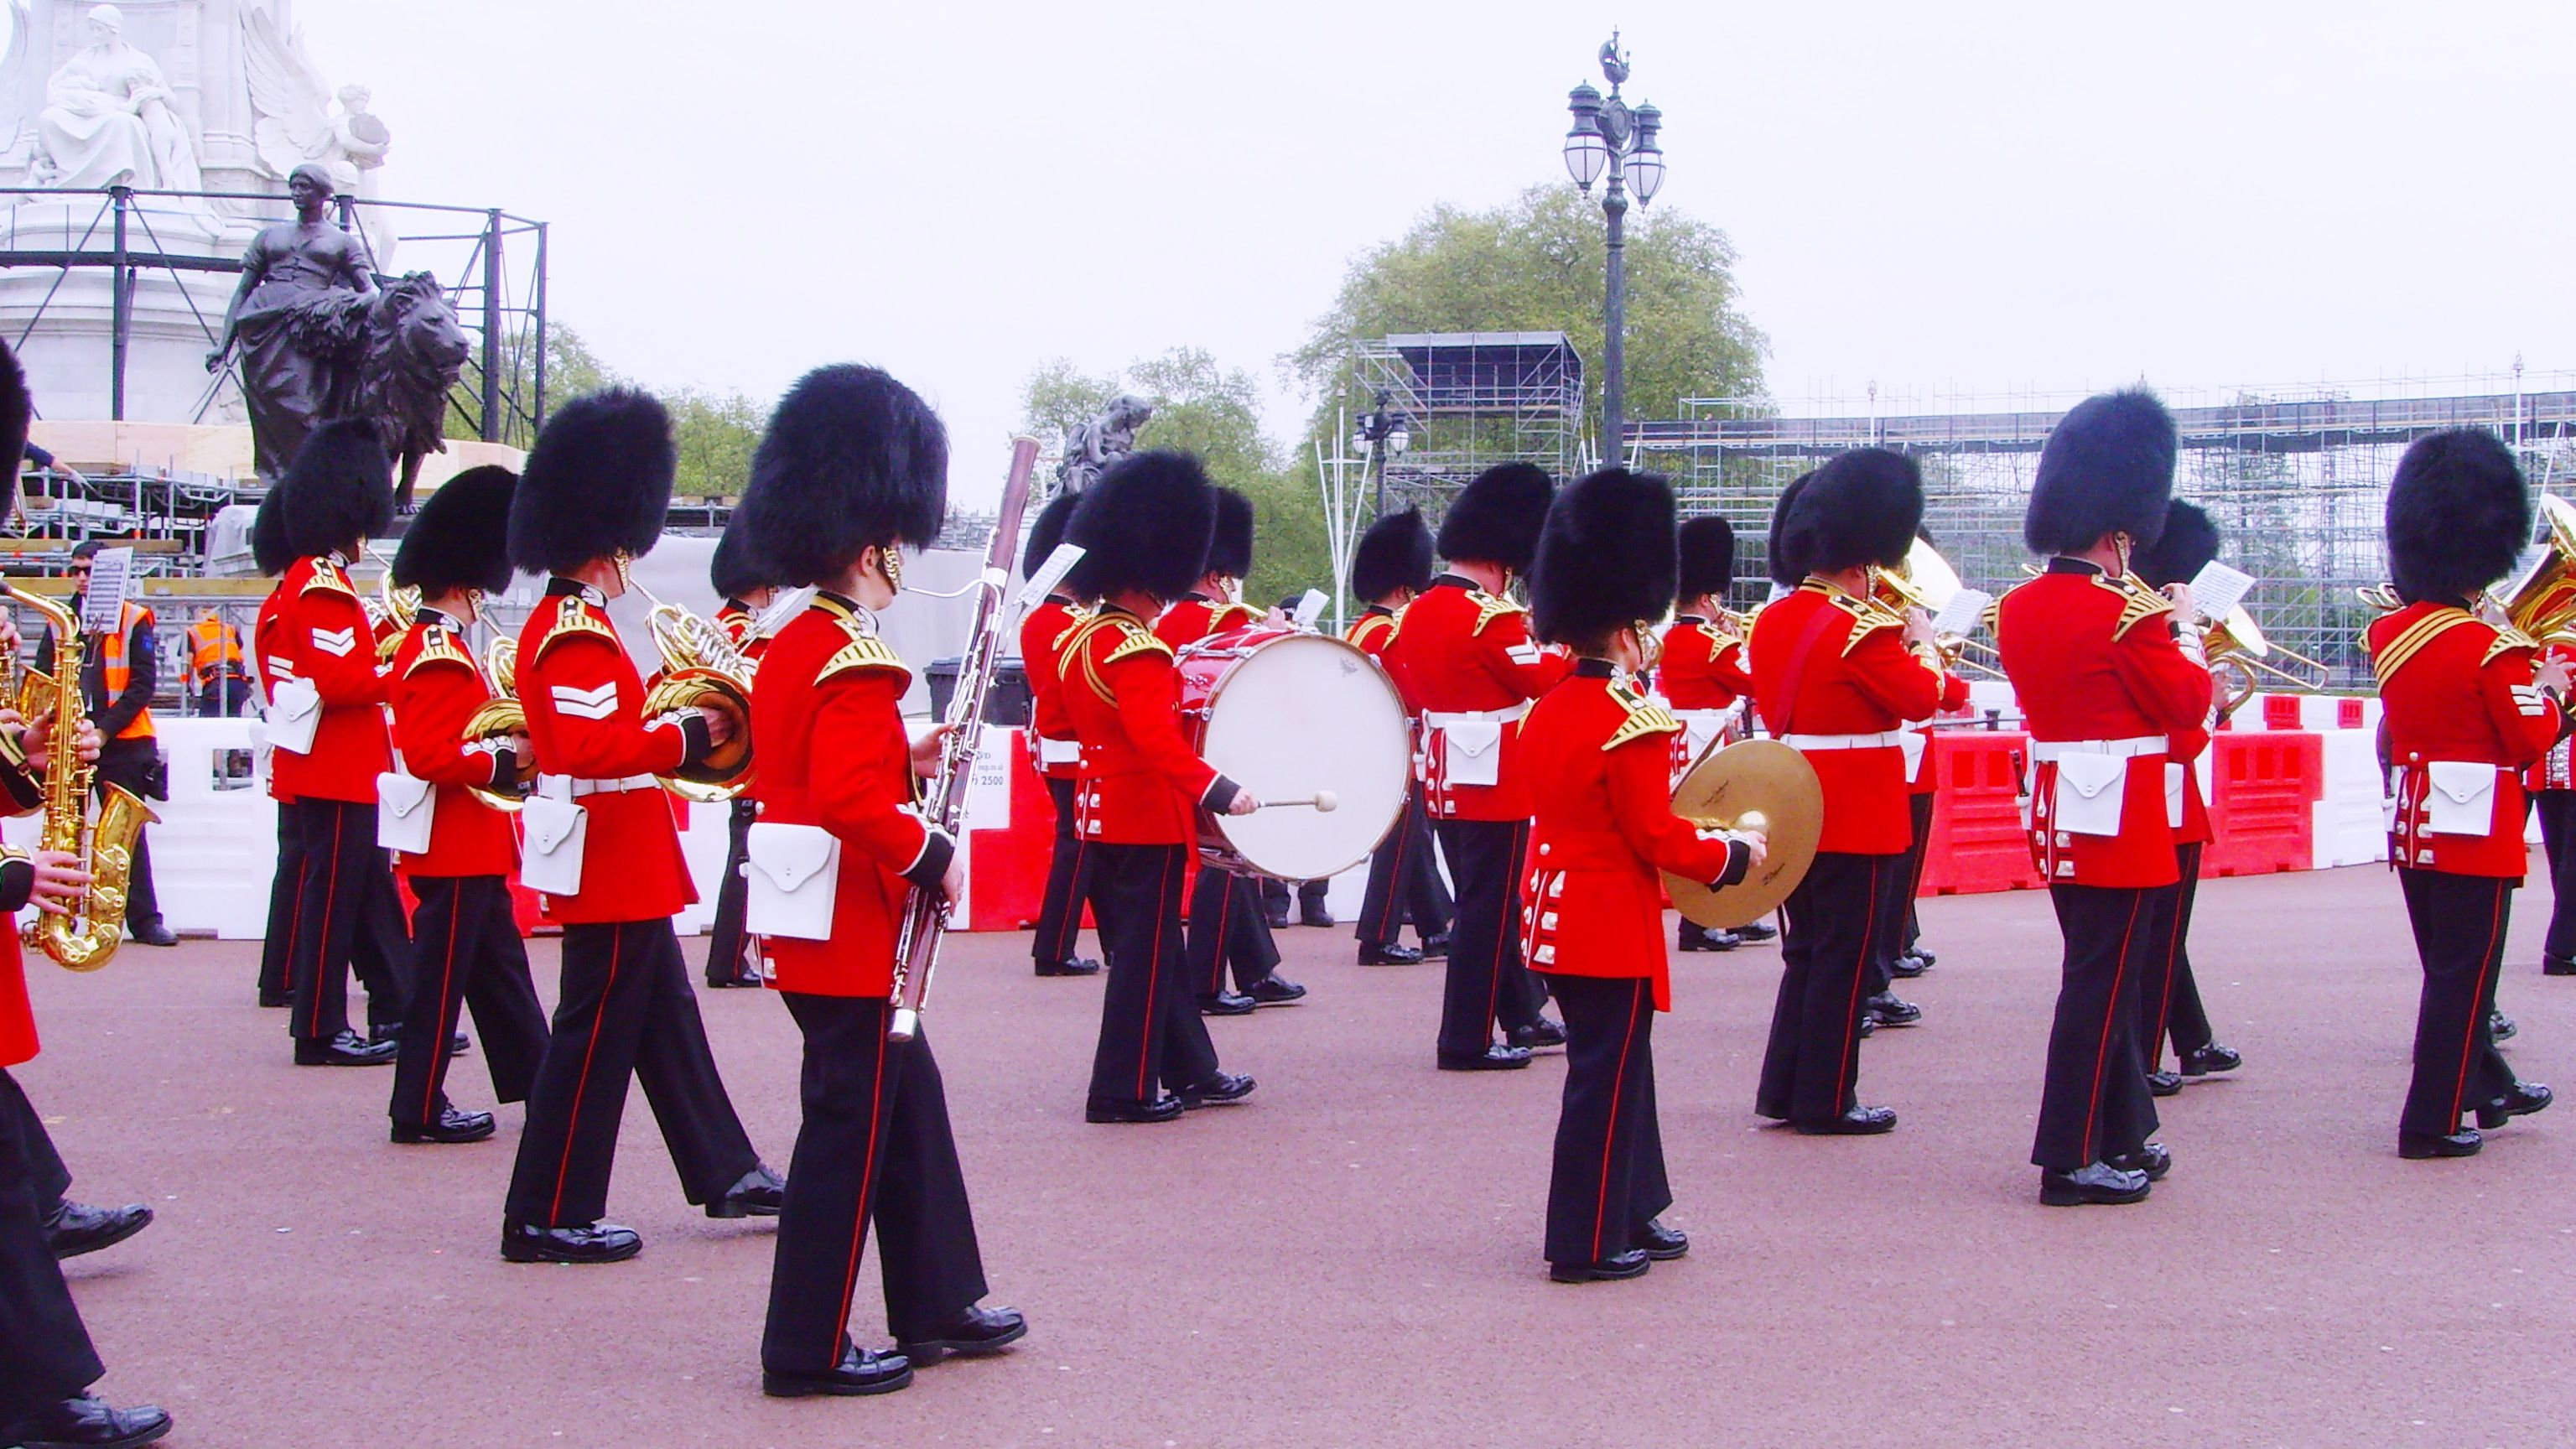 Royal marching band in London